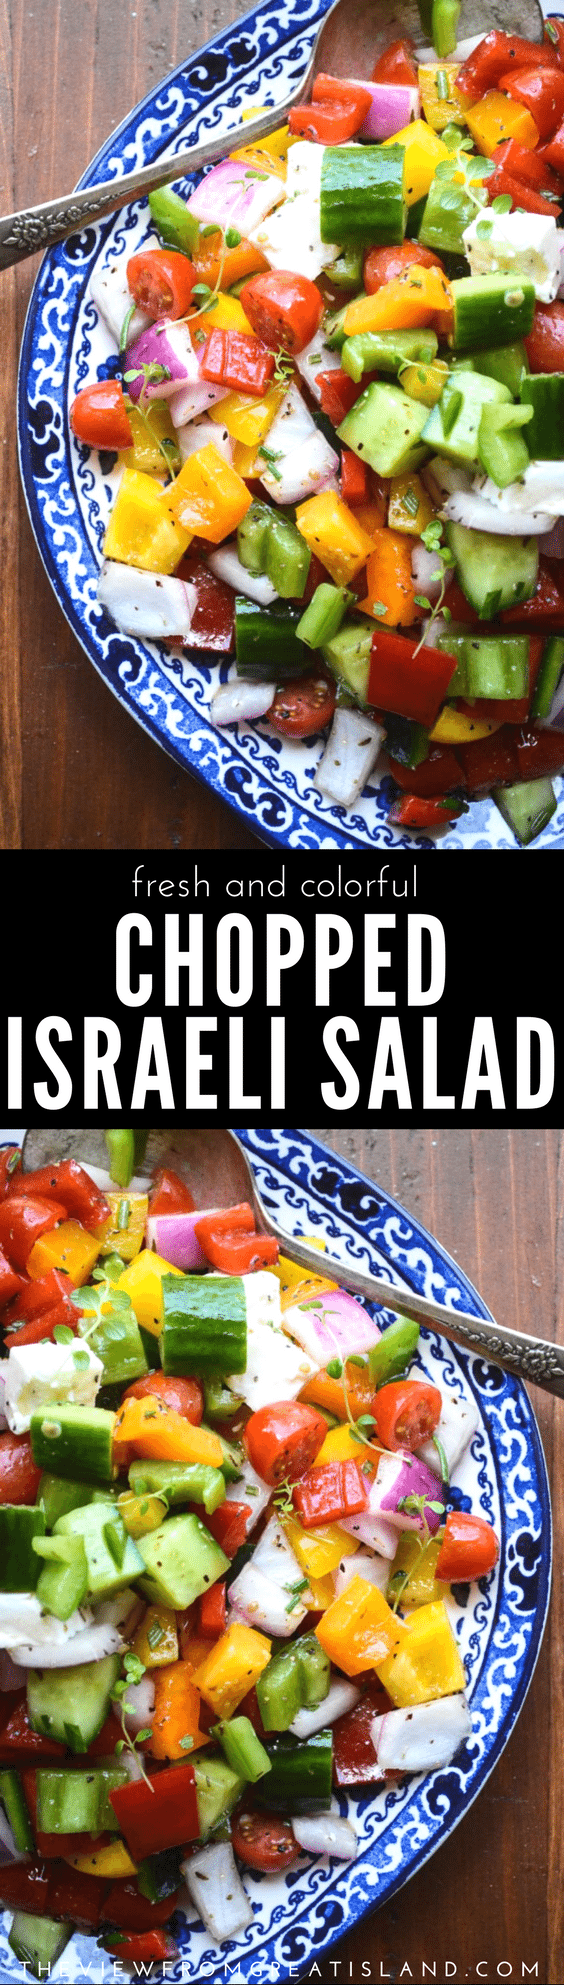 Israeli Chopped Salad ~ this healthy chunky chopped salad is the perfect dish for summer gatherings because there's no mayo to spoil, and the veggies retain their crunch for days. Don't forget about it during the rest of the year, though, it makes the perfect side for almost any meal. #salad #israelisalad #choppedsalad #healthysaladrecipe #glutenfree #vegetarianrecipe #lowcarb #potlucksalad #barbequesalad